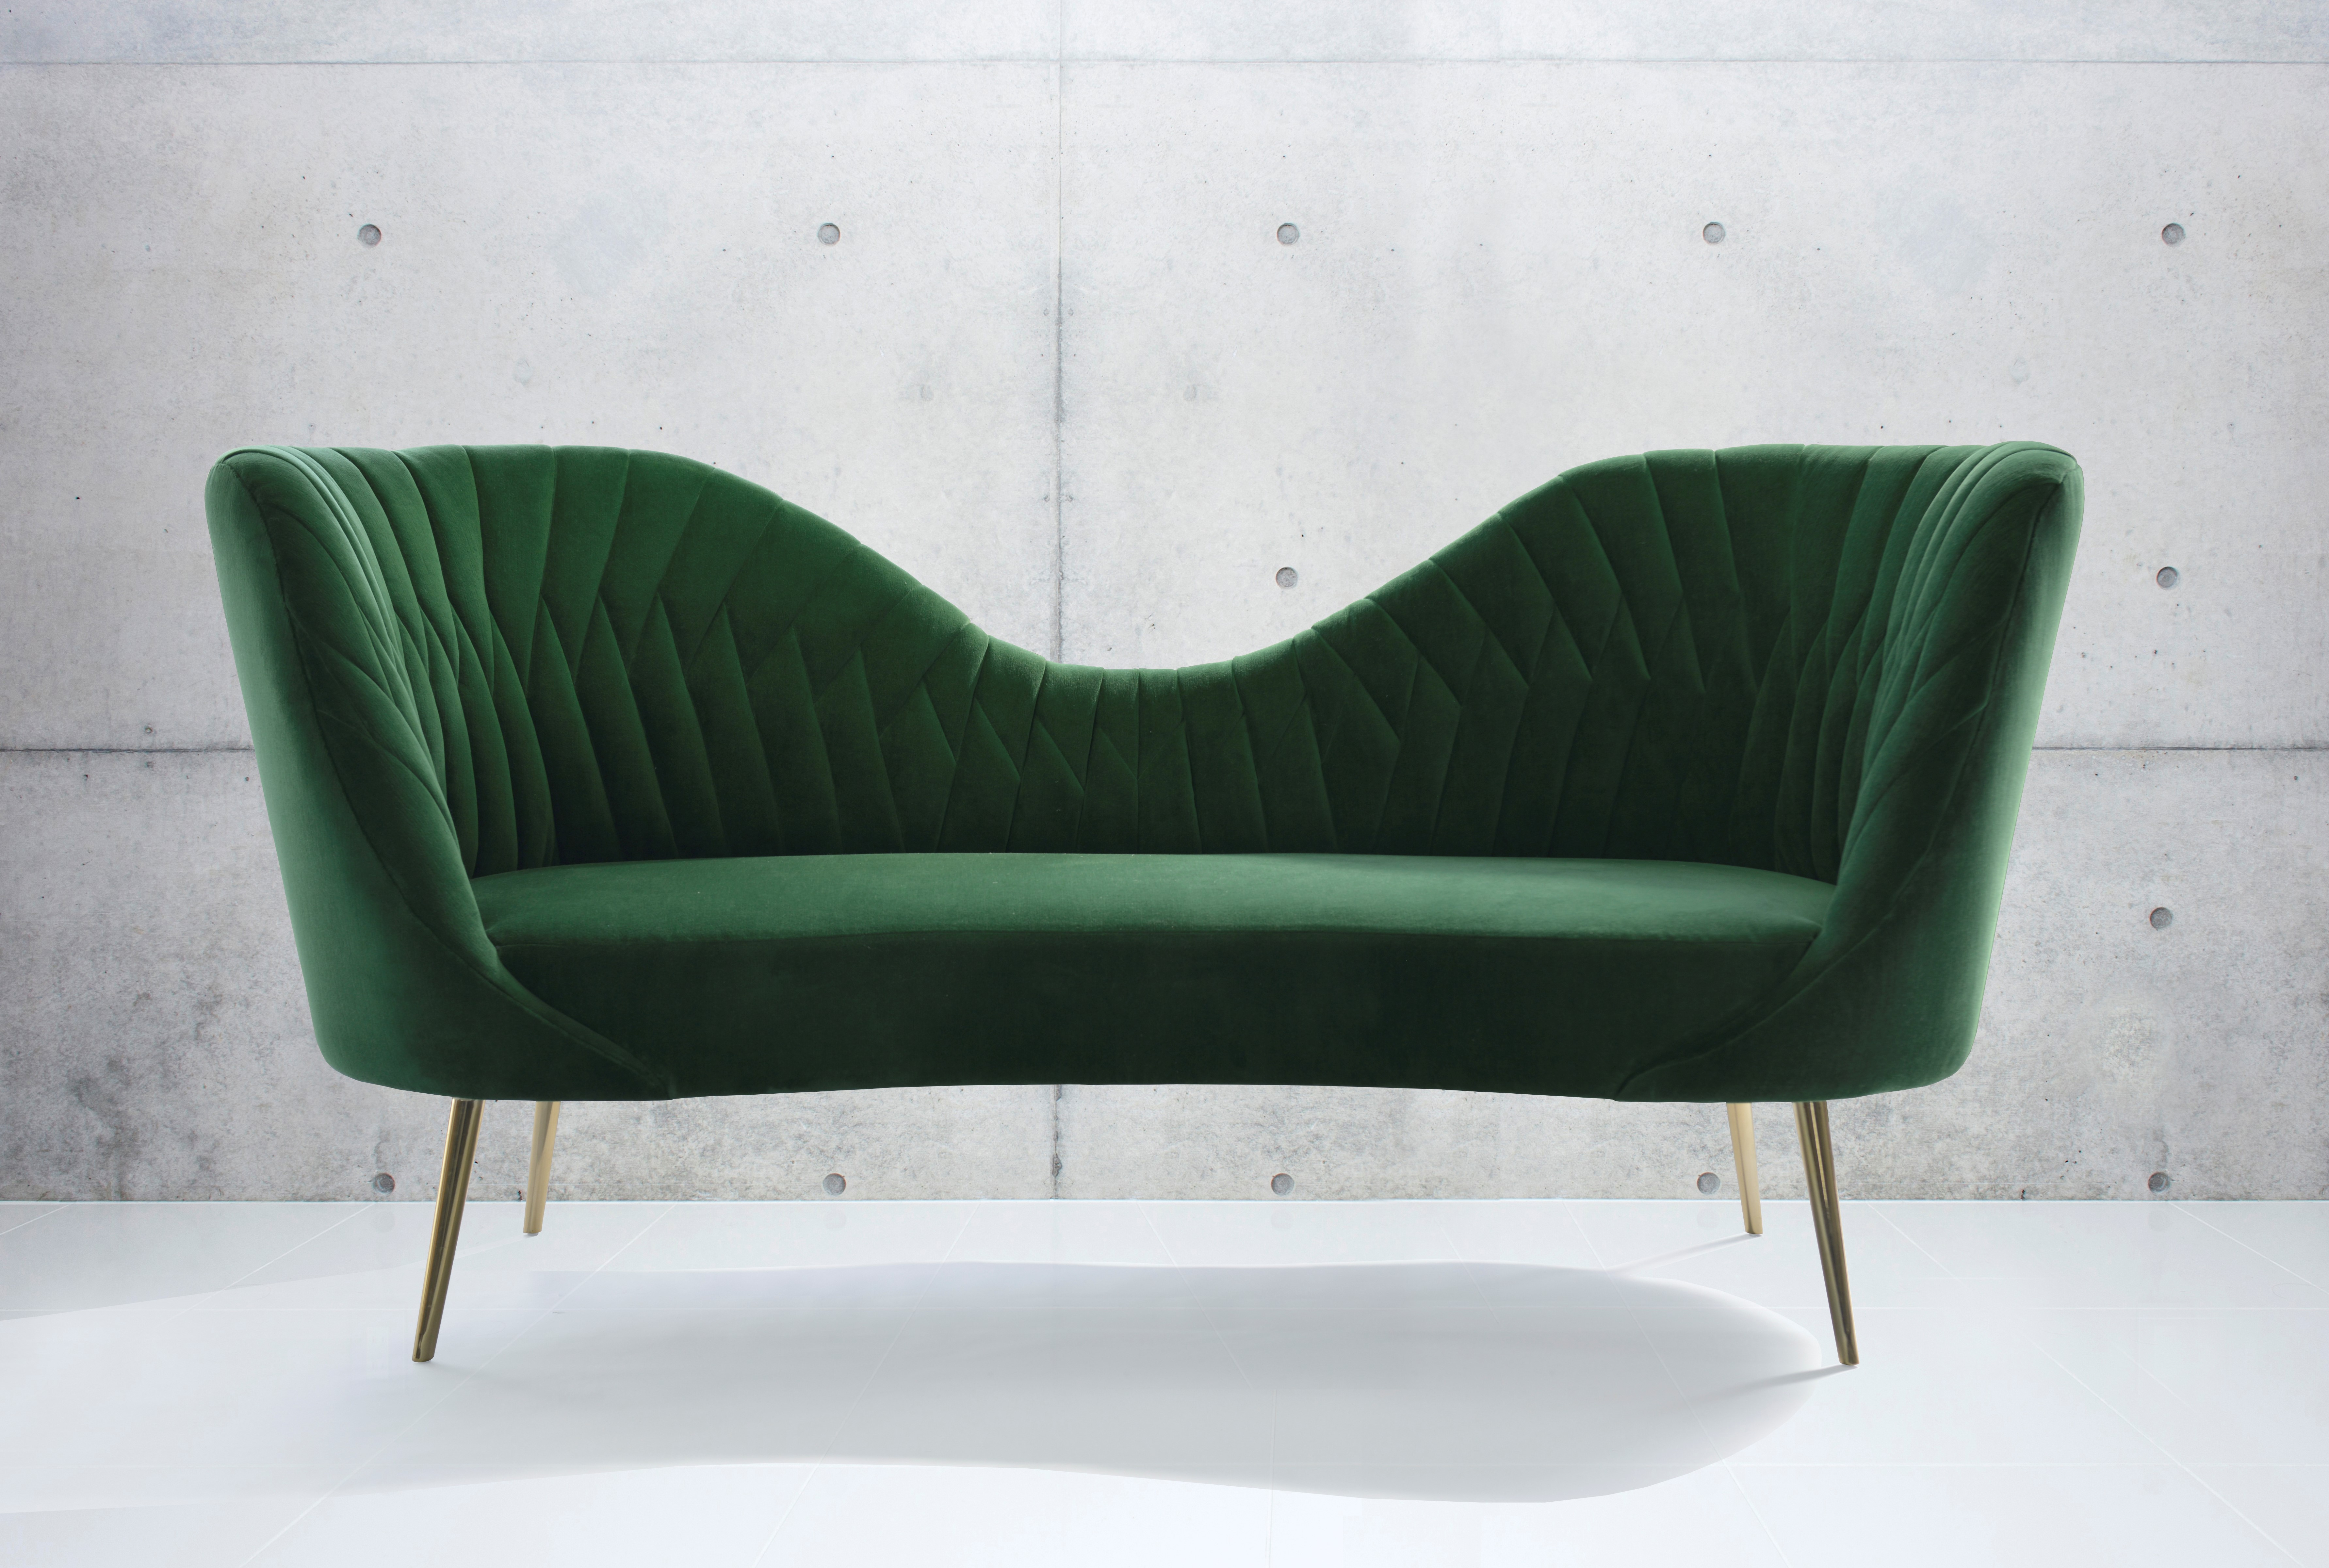 Nathan Anthony - Minx Wing Sofa